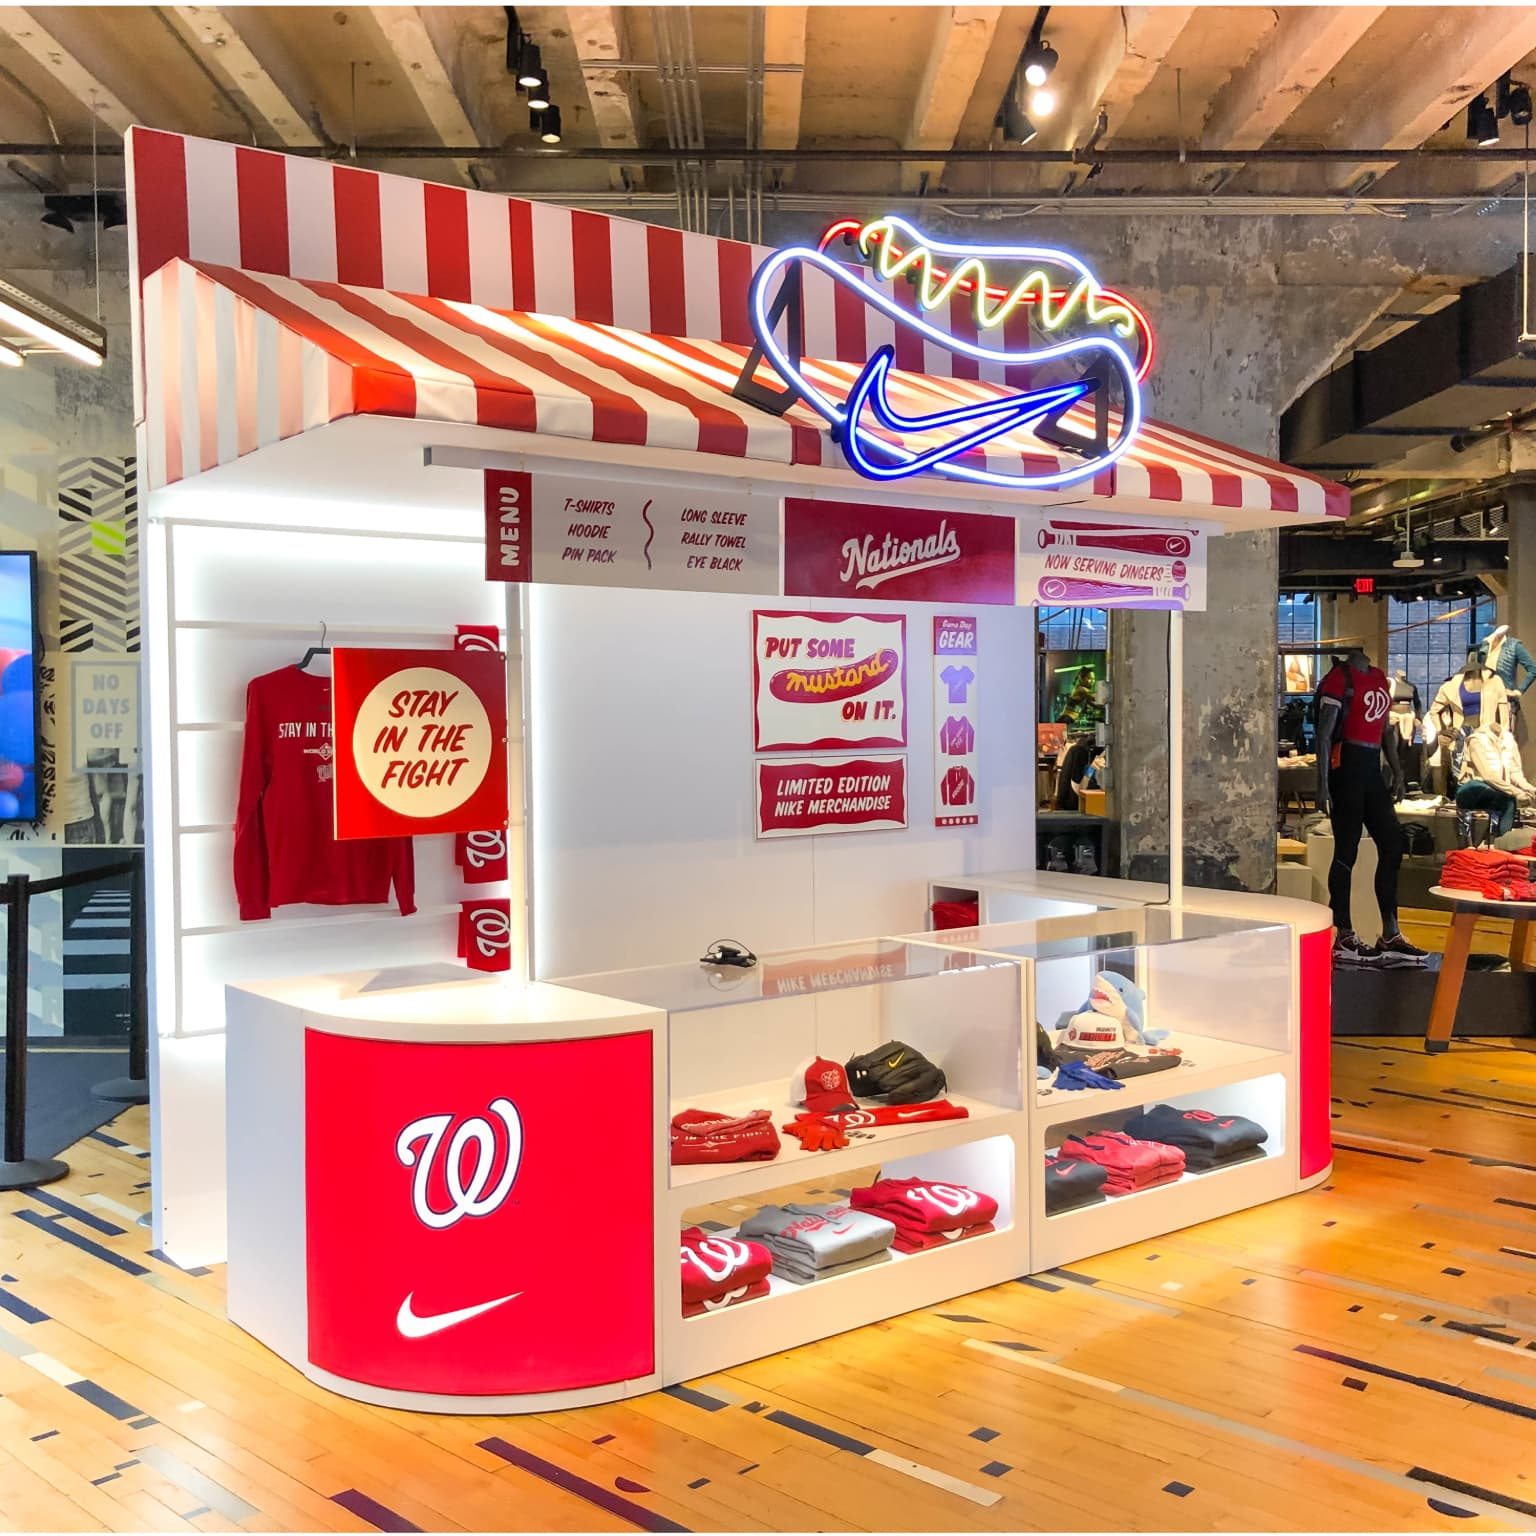 Nike Baseball 2019 World Series Concession Stand